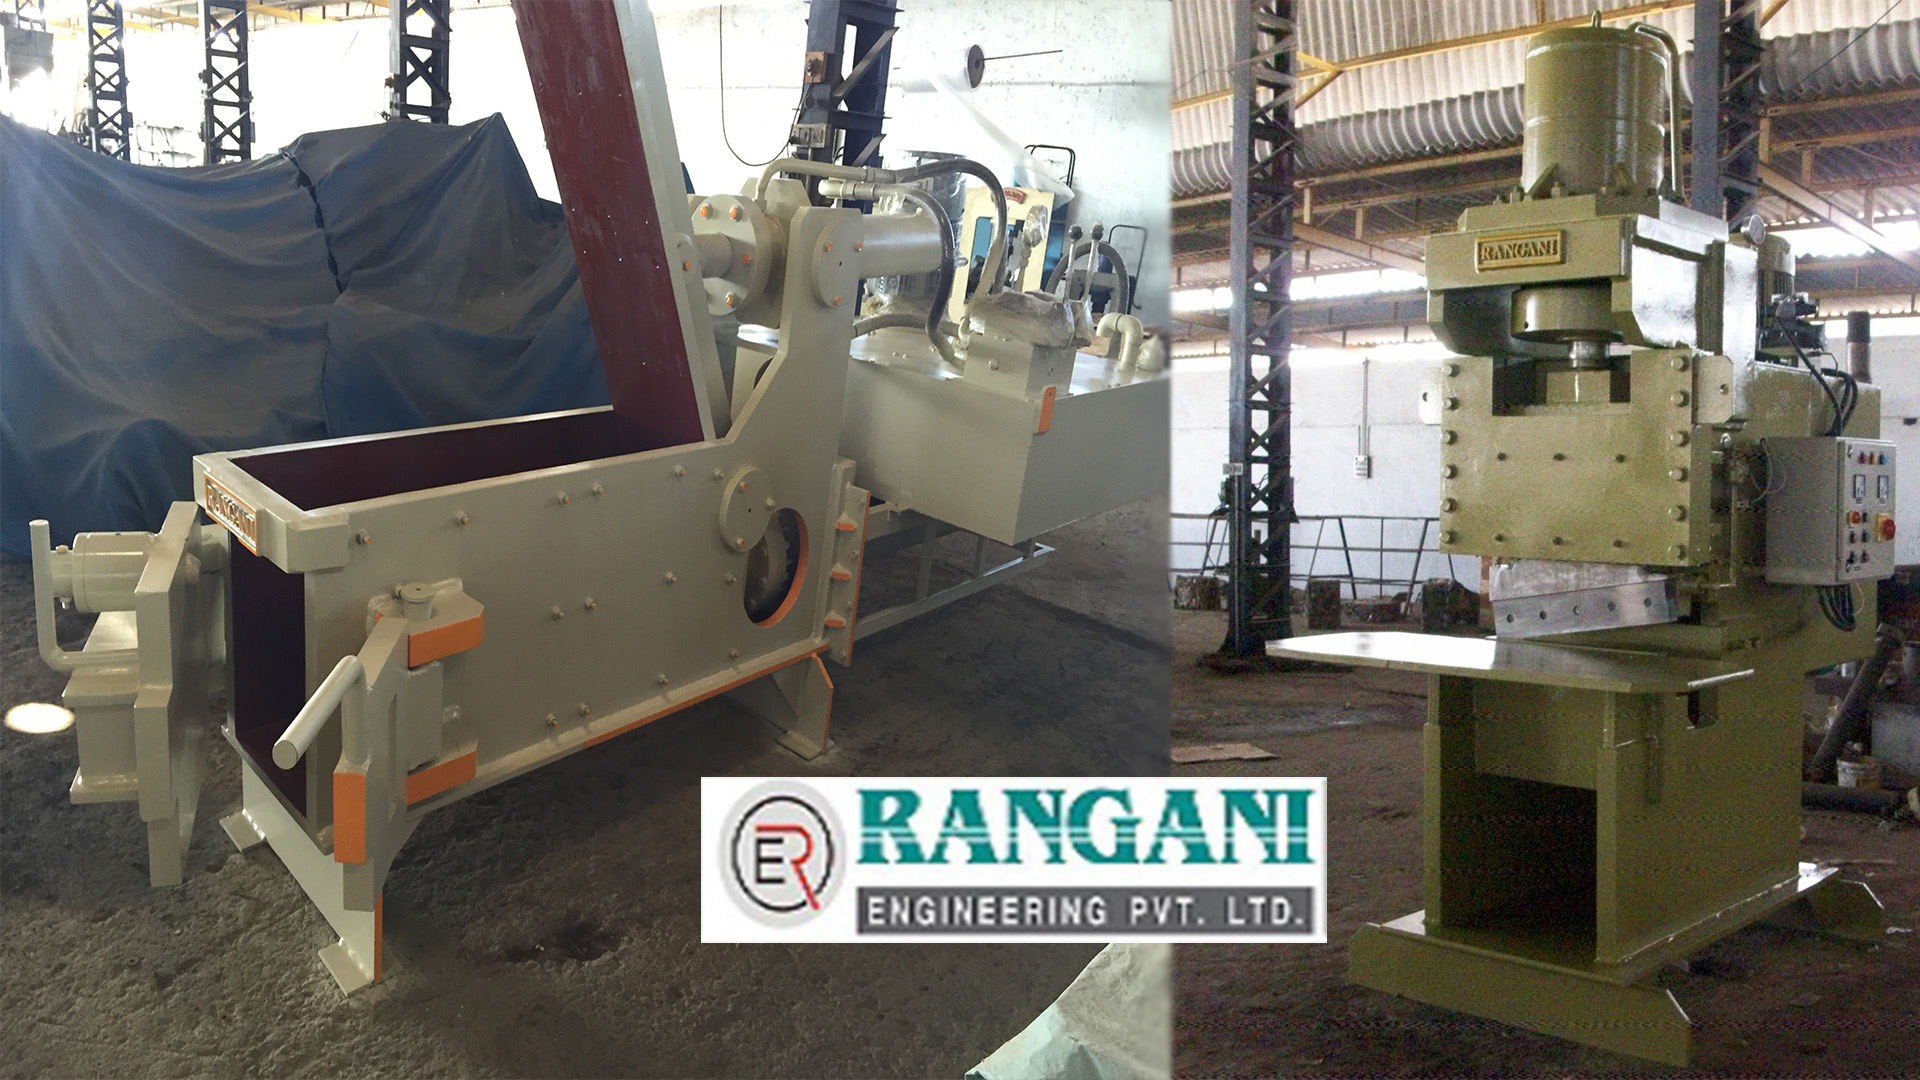 Rangani Engineering Pvt Ltd